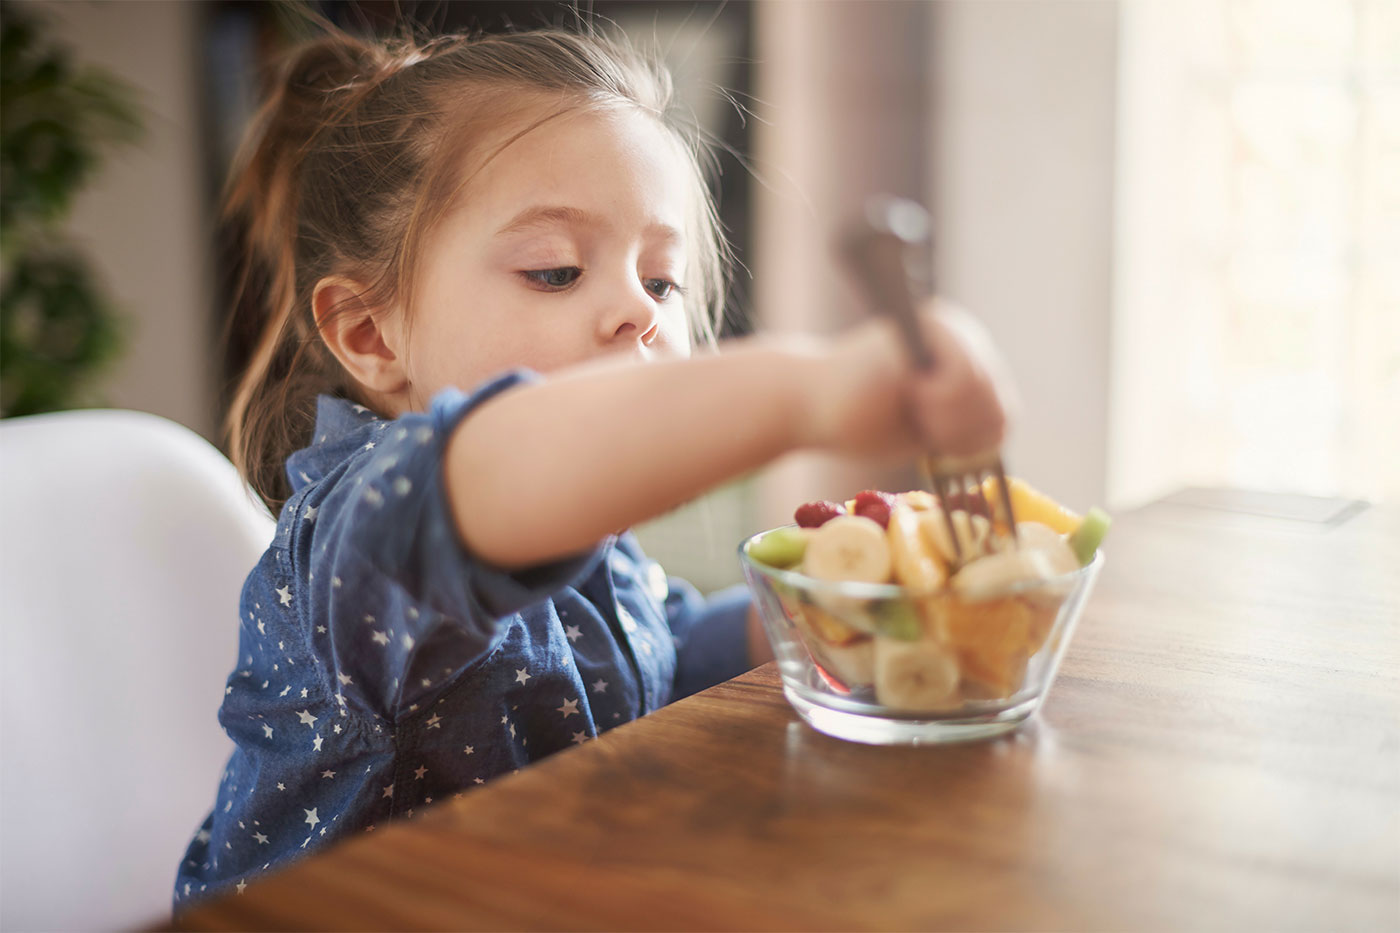 5 must-read tips on how to handle a threenager. For anyone who's dealing with a threenager, here are effective ways to parent your strong-willed child.